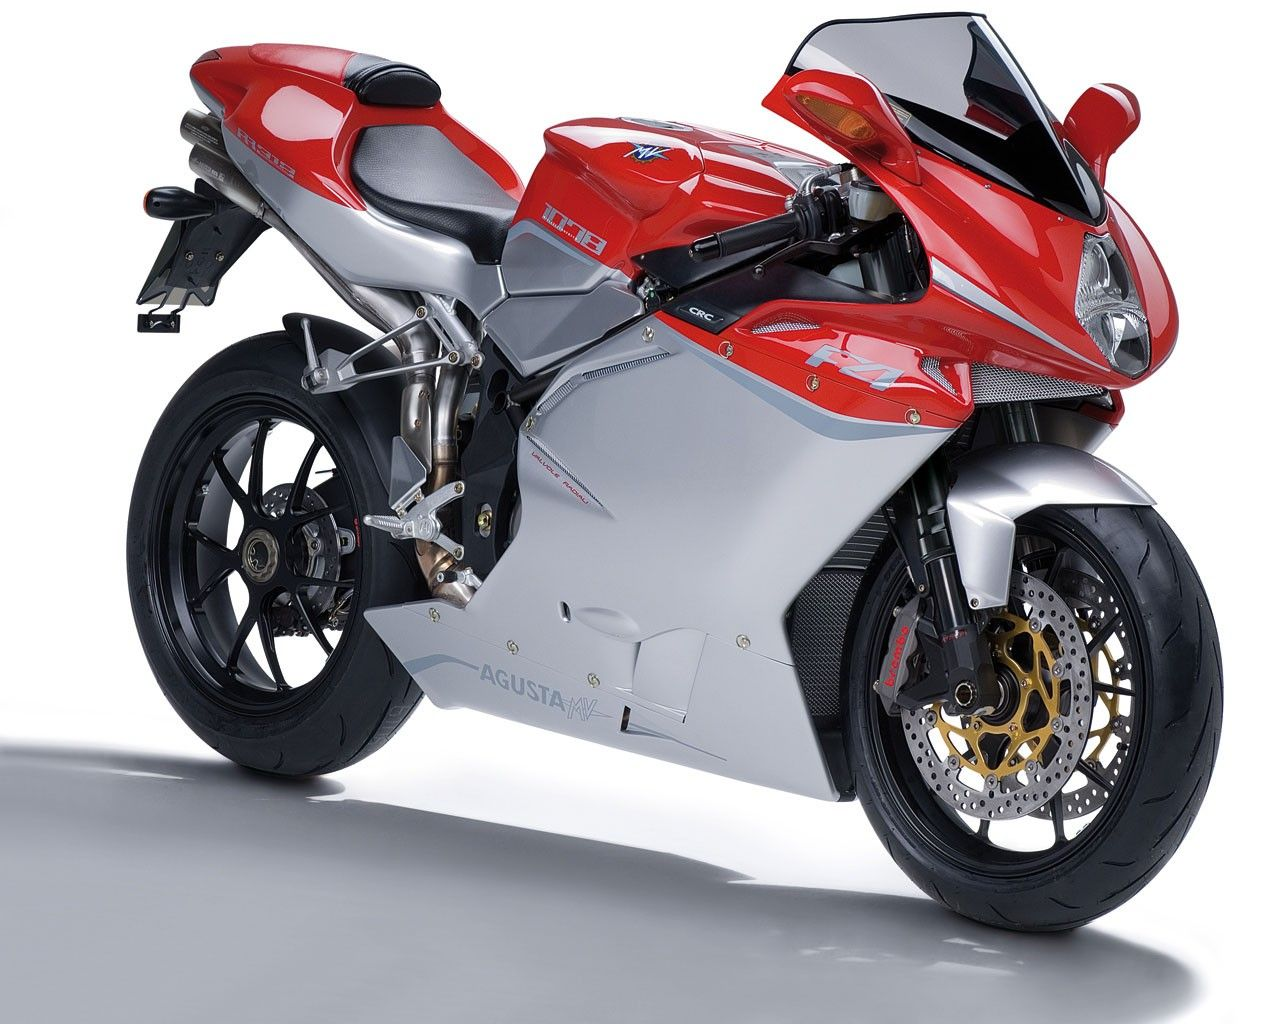 super racing bikes wallpapers free download hd | wallpapers hd